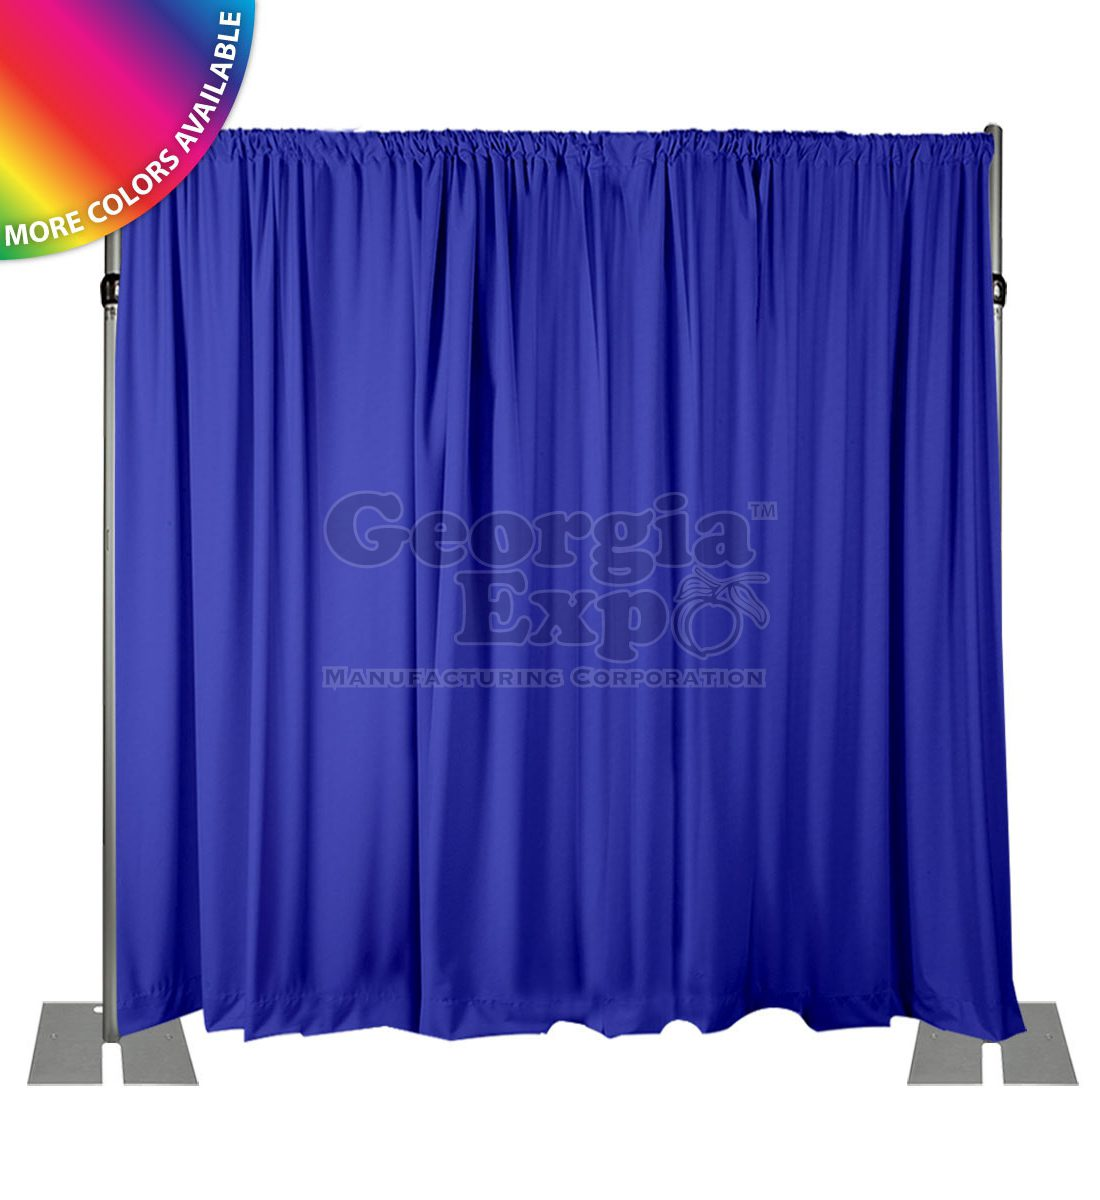 pipe unnecessary diy x wide is ft l high economy kit drapes drape pipes sometimes and with